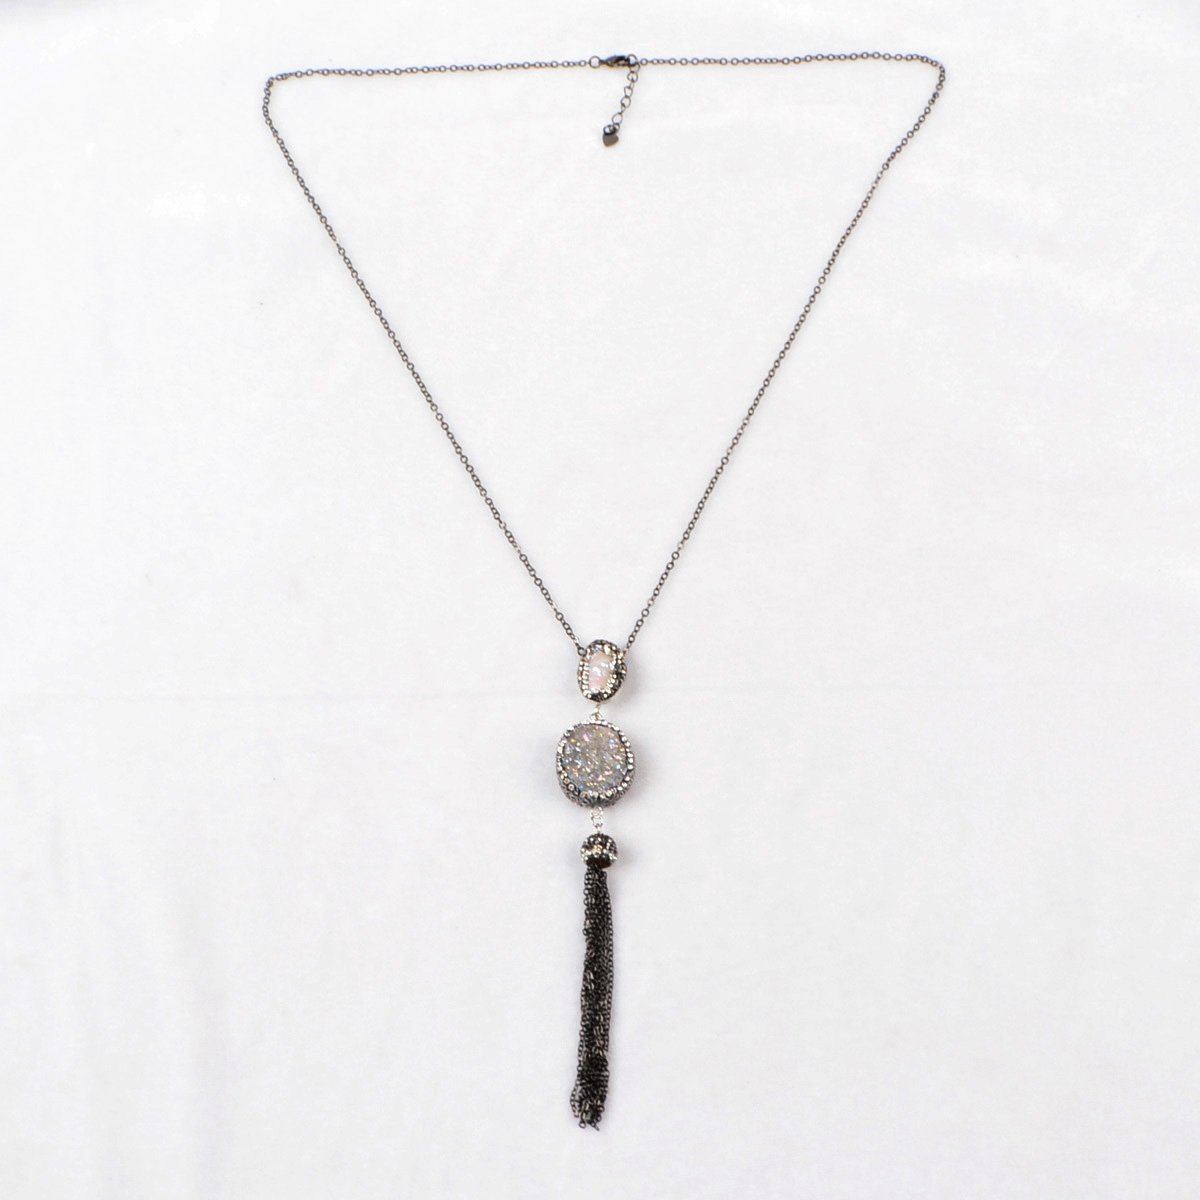 JAB Round Natural Agate Titanium AB Druzy /& Natural Pearl Tassel Necklace Paved Zircon Black Chain